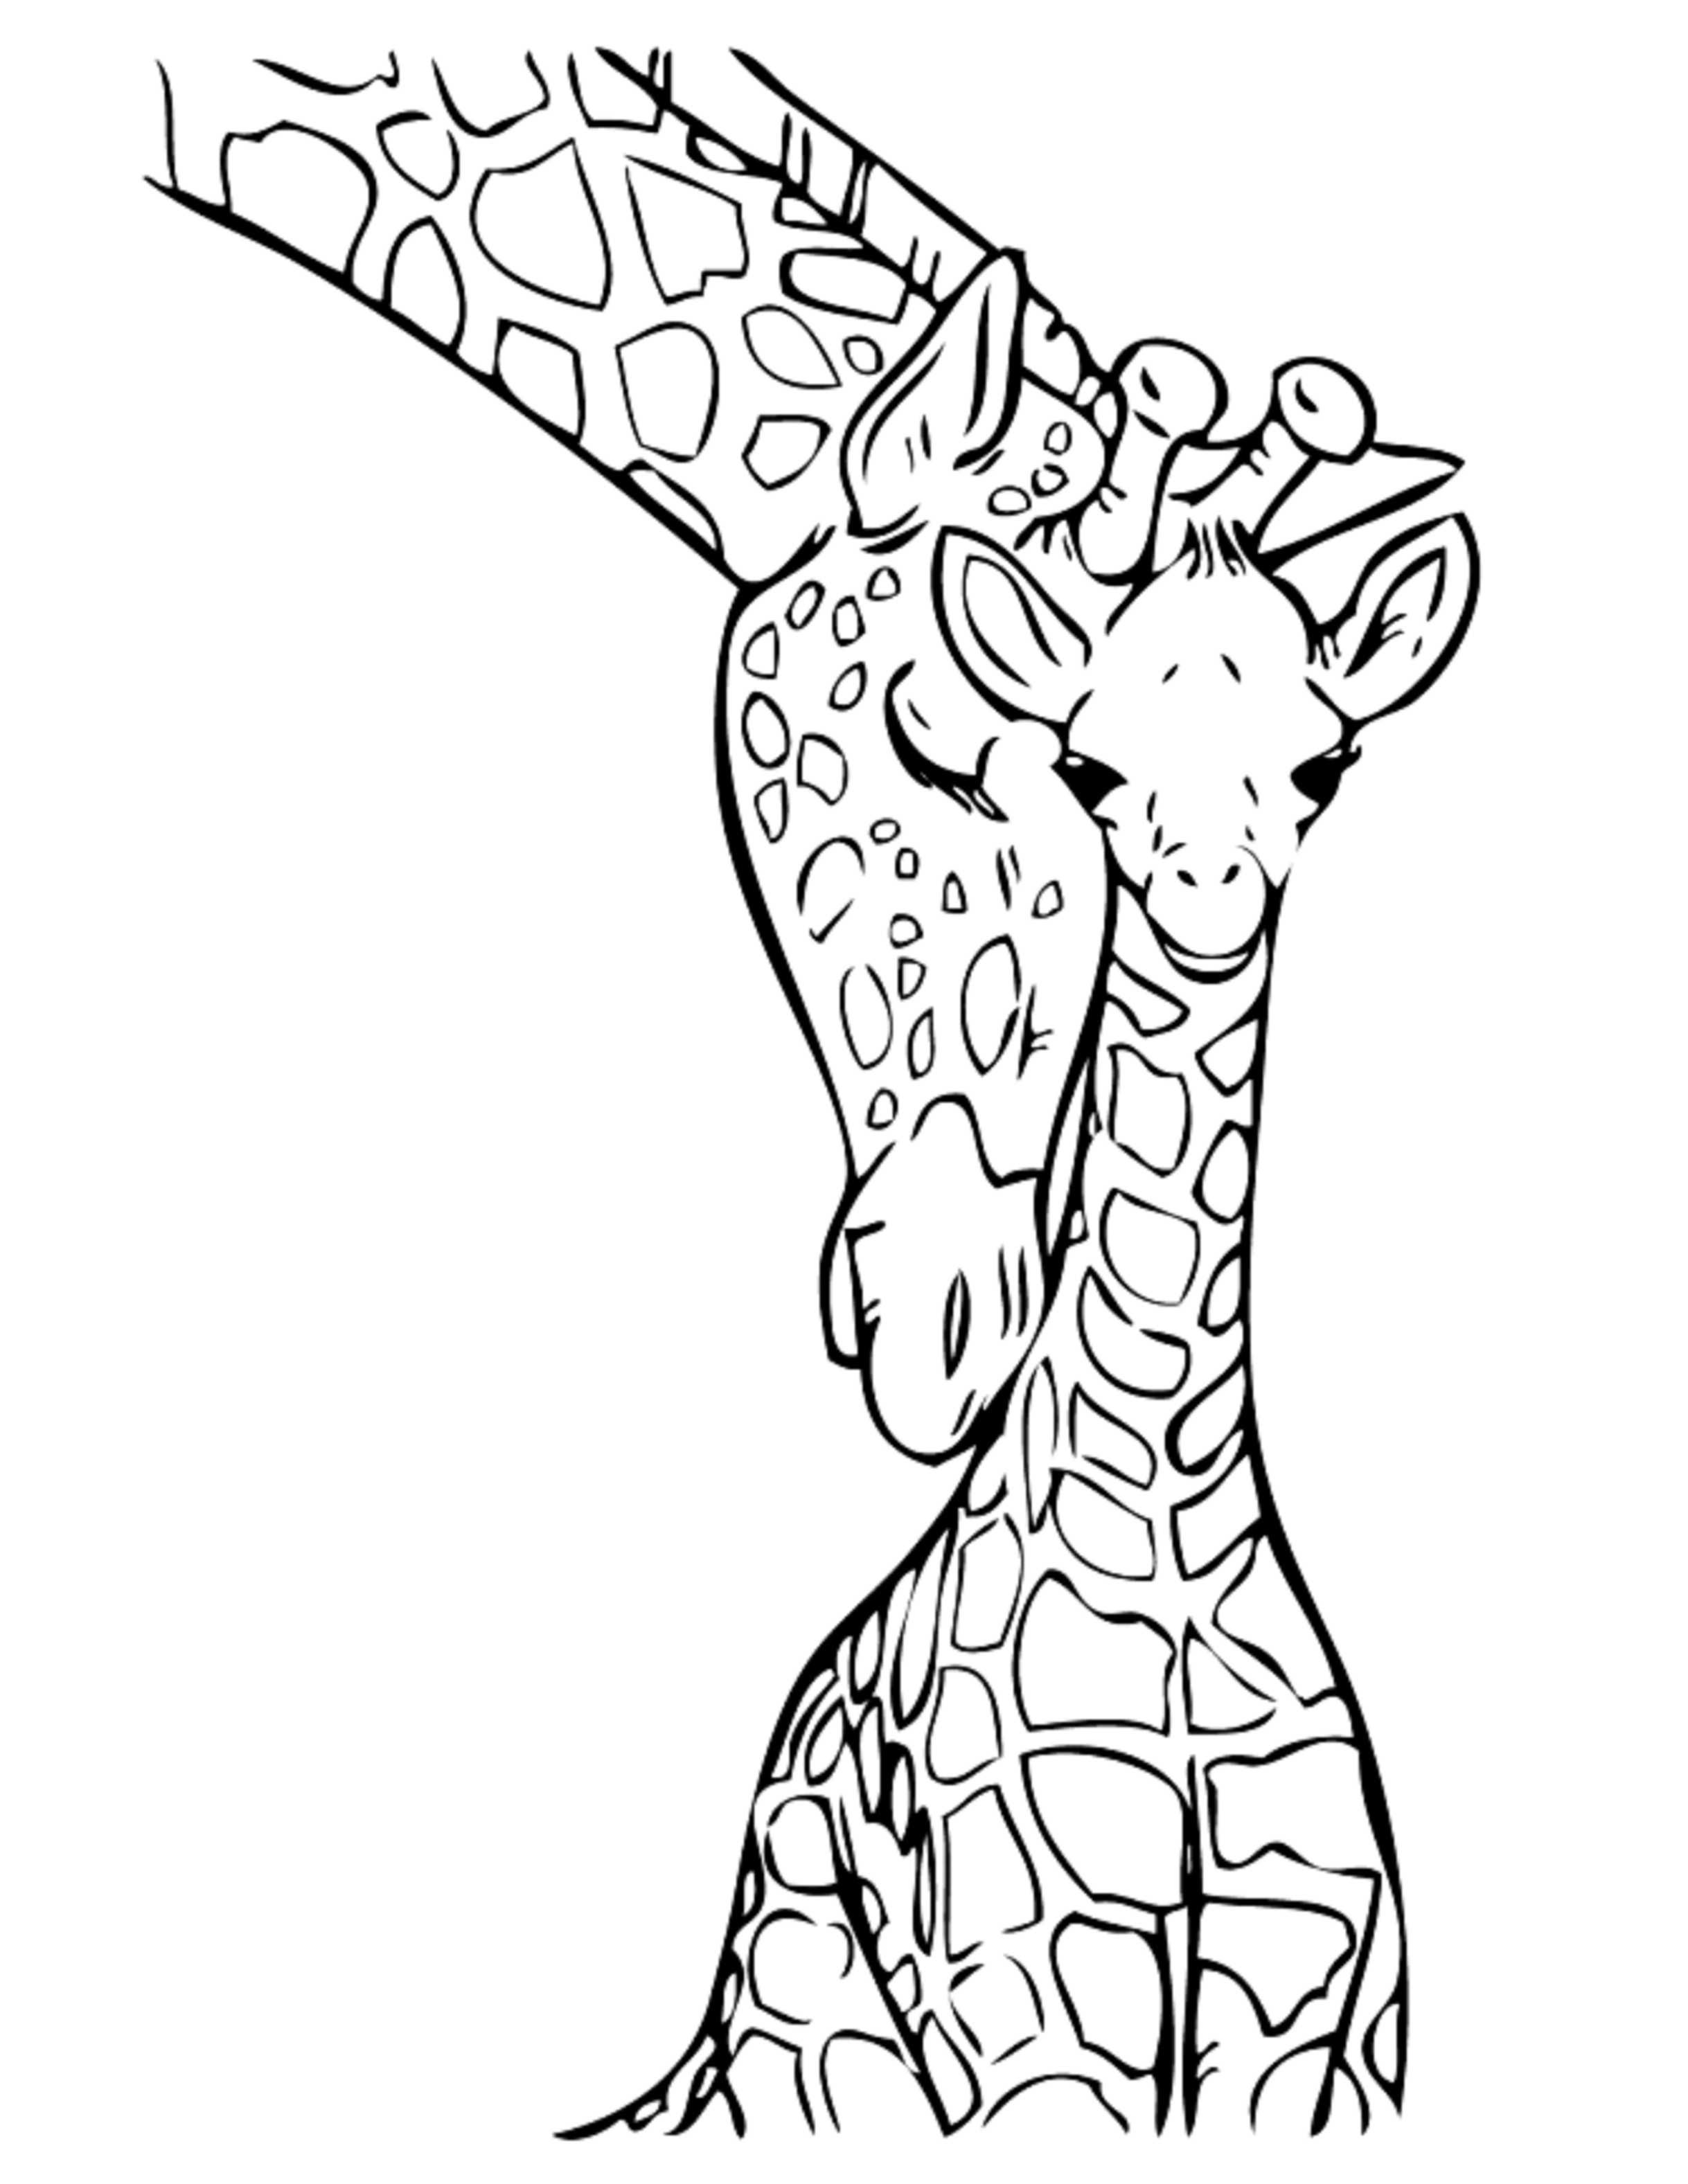 Giraffe Coloring Pages Giraffe Coloring Pages Printable Printable Kids Colouring Pages Jungle Coloring Pages Giraffe Coloring Pages Animal Coloring Books